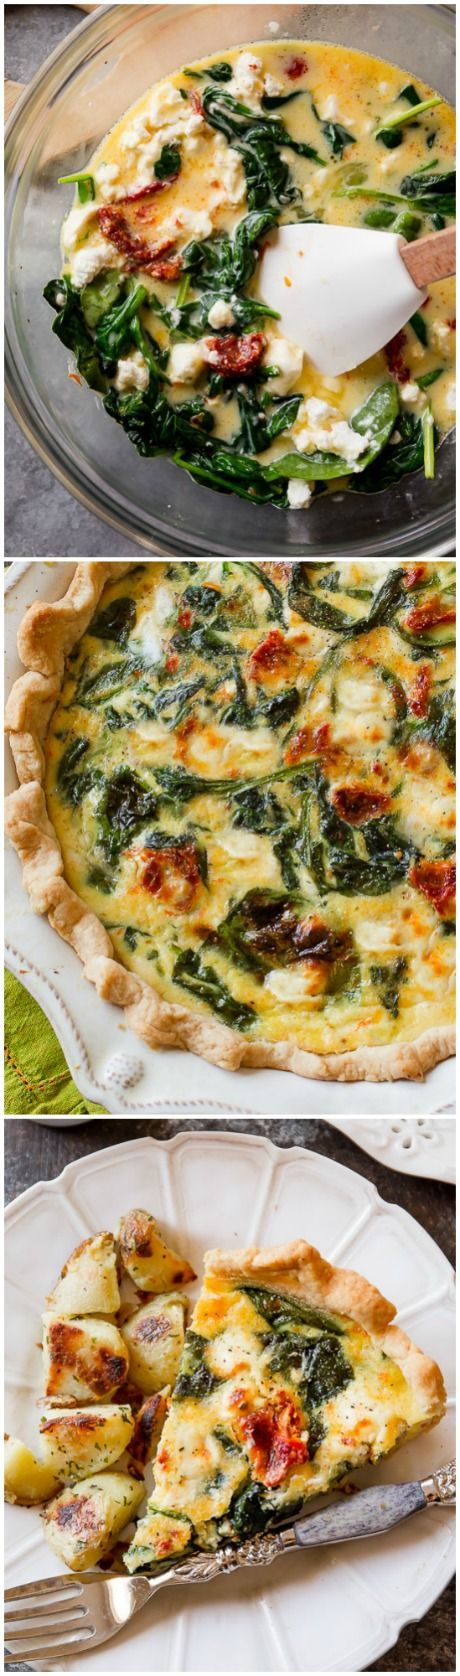 Goat cheese spinach sun dried tomato quiche recipe spinach quiche and sallys baking addiction - Make sun dried tomatoes explosion flavor ...